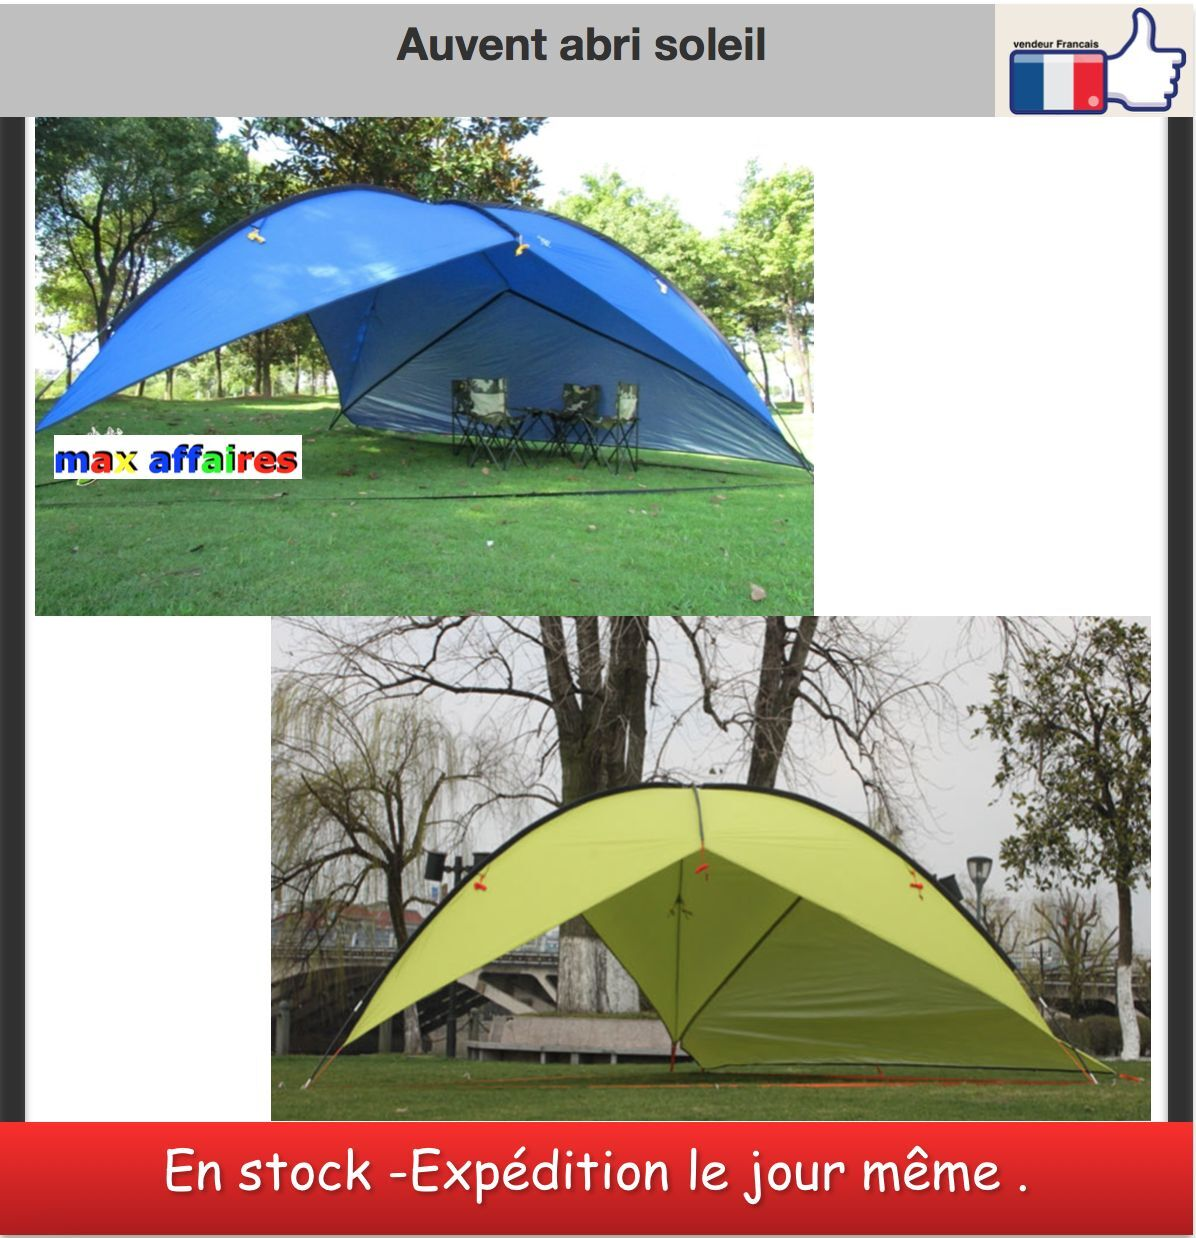 abri auvent toile soleil jardin camping tanche tente parasol 4 80 m x 4 80 m eur 151 20. Black Bedroom Furniture Sets. Home Design Ideas